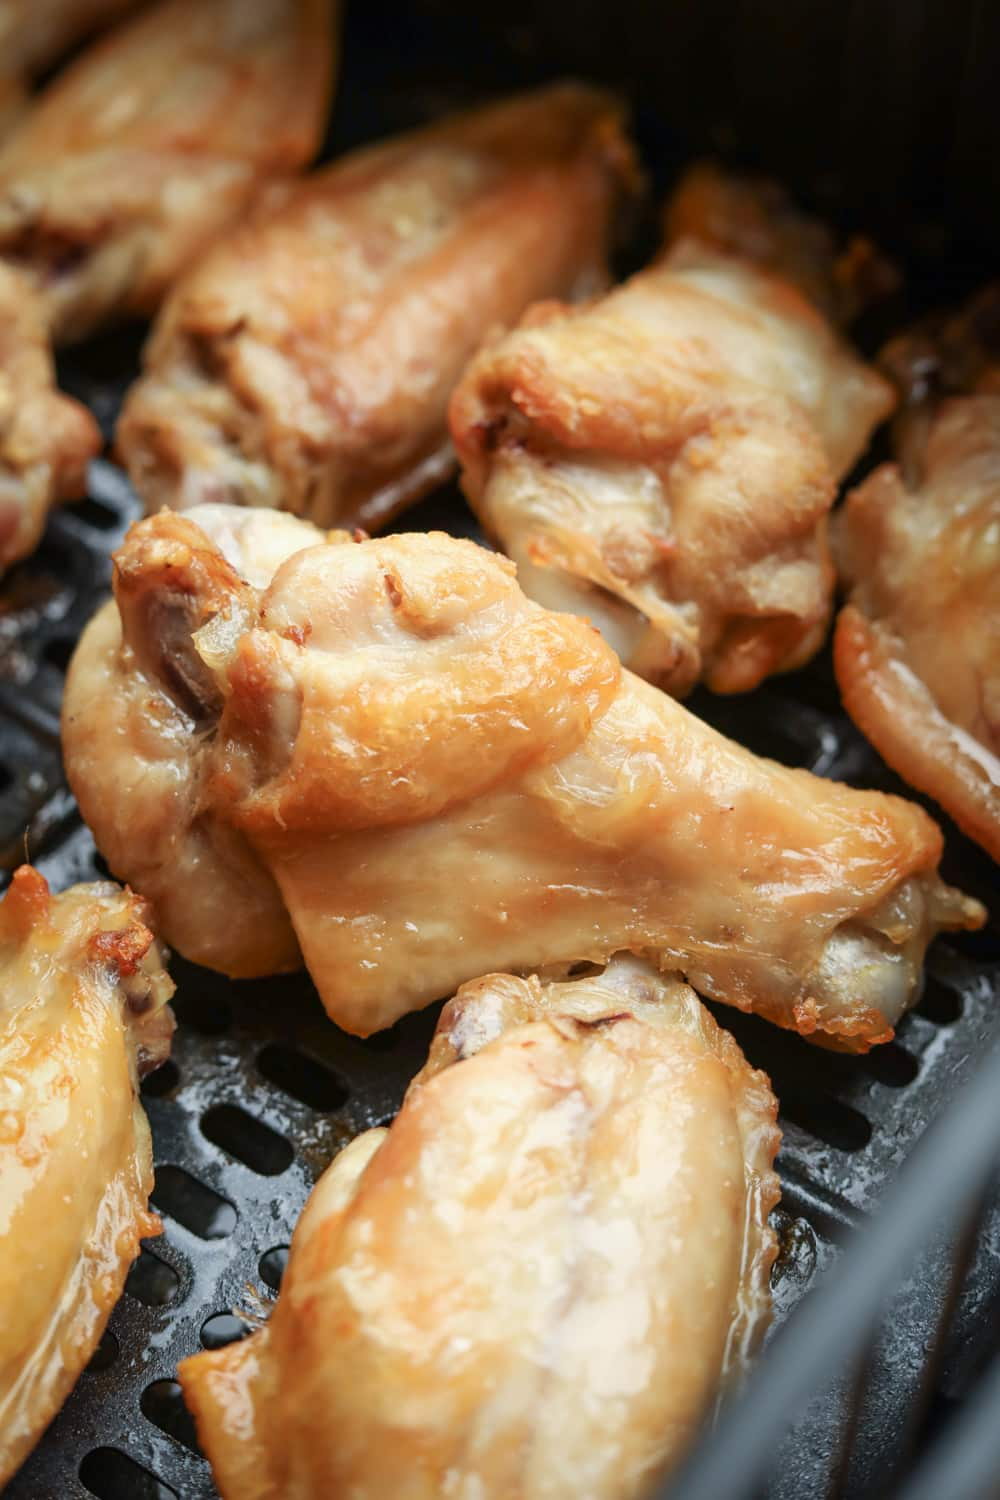 Chicken wings in an air fryer after one interval of cooking.